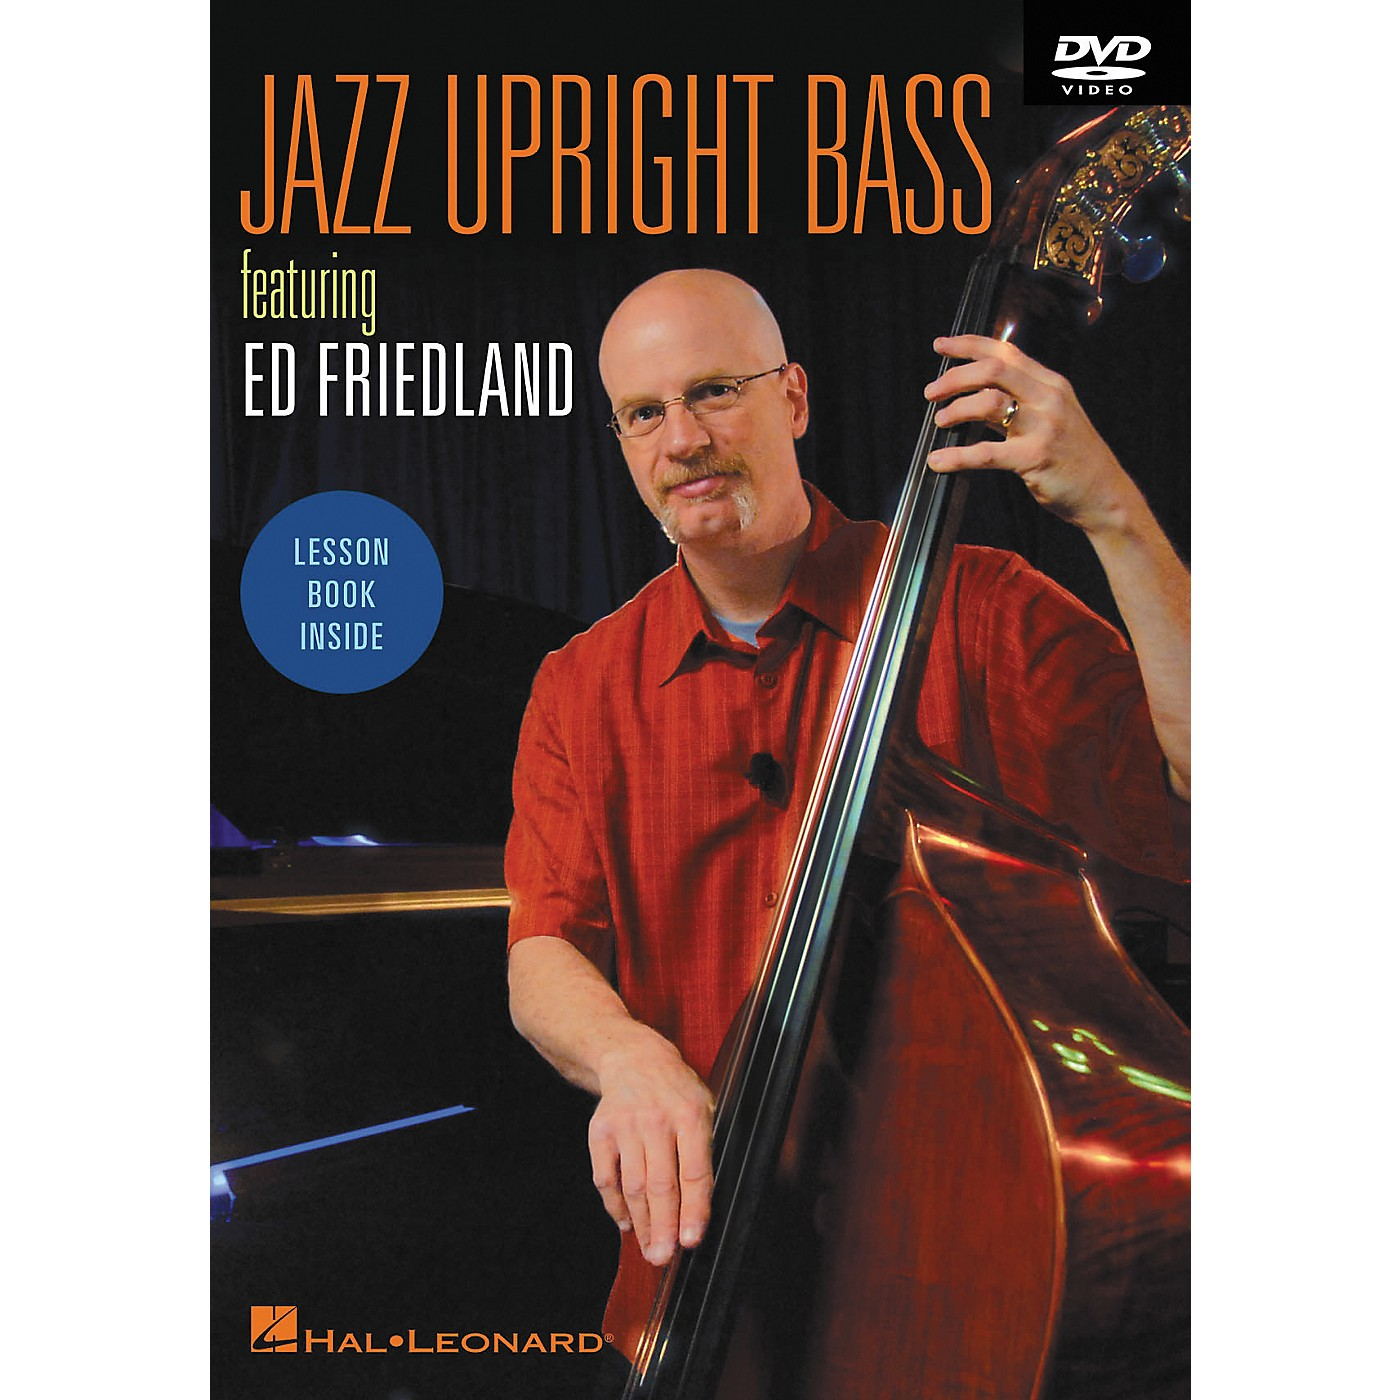 Hal Leonard Jazz Upright Bass DVD Featuring Ed Friedland thumbnail